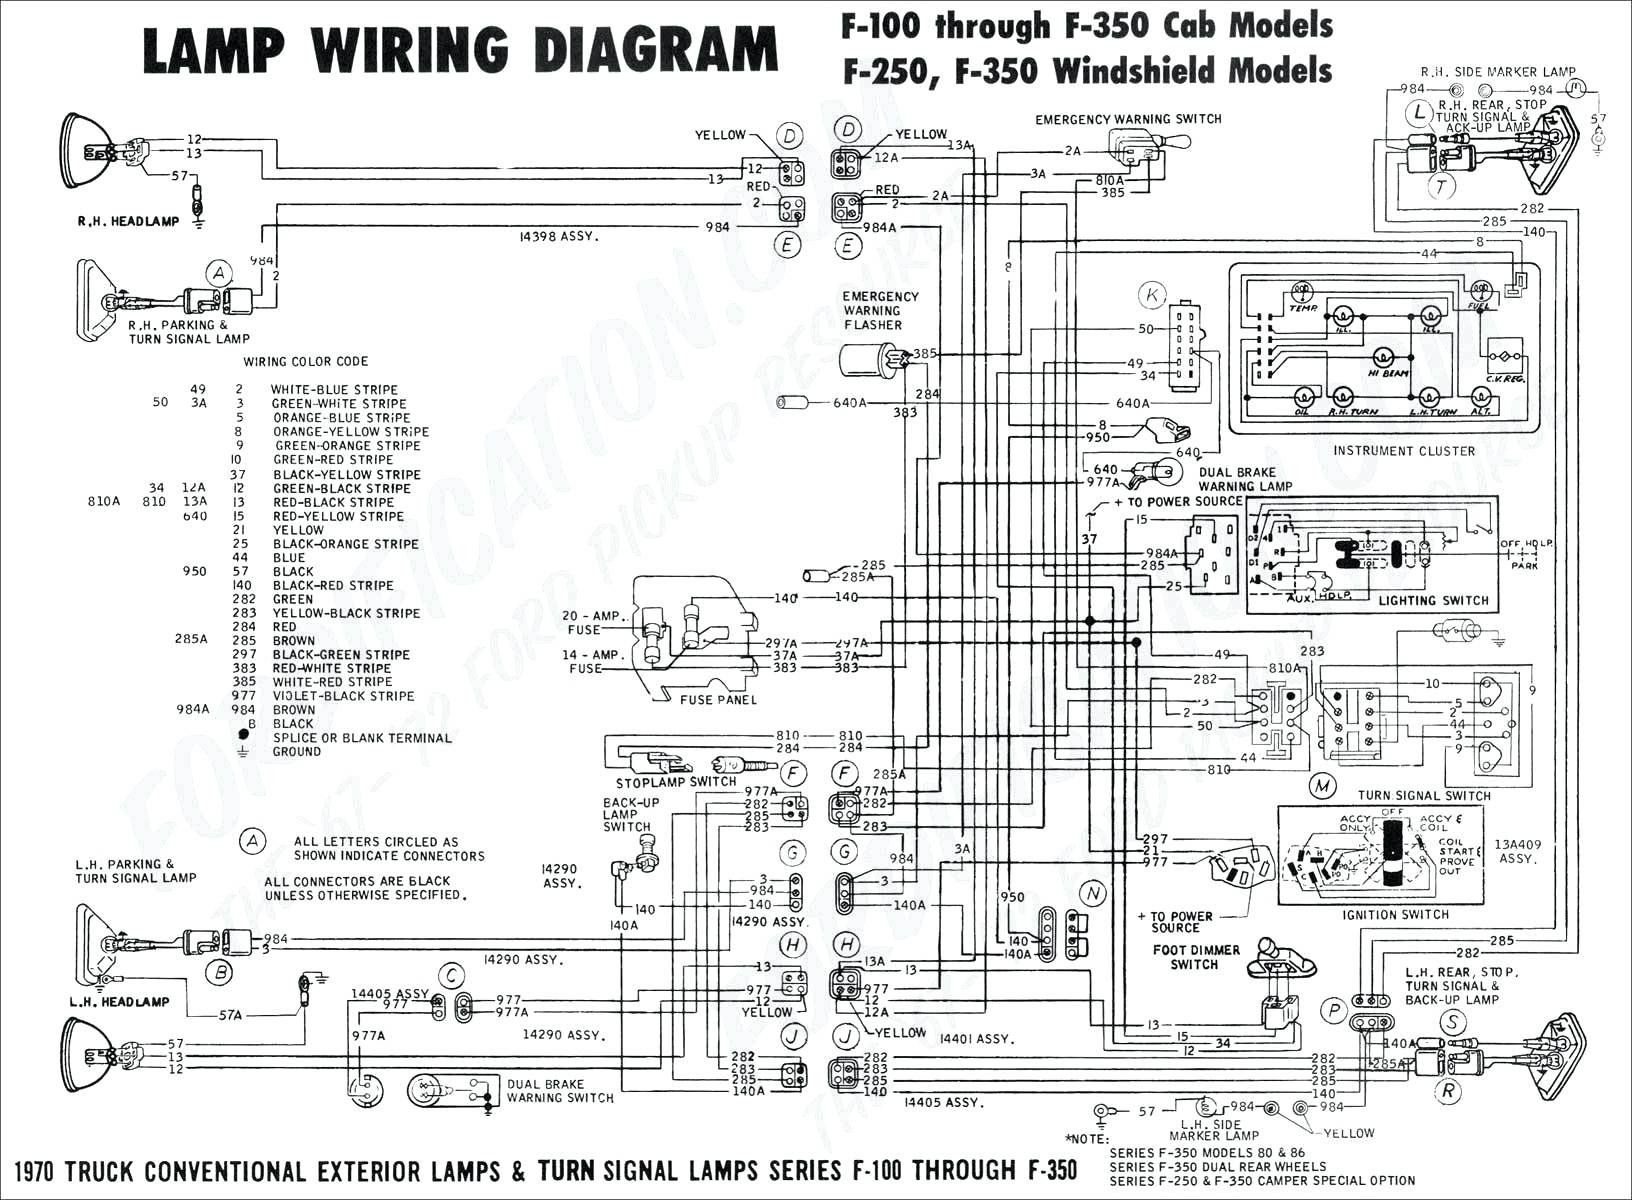 f350 electrical diagram | area-anywhere wiring diagram options -  area-anywhere.autoveicoli-elettrici.it  autoveicoli elettrici